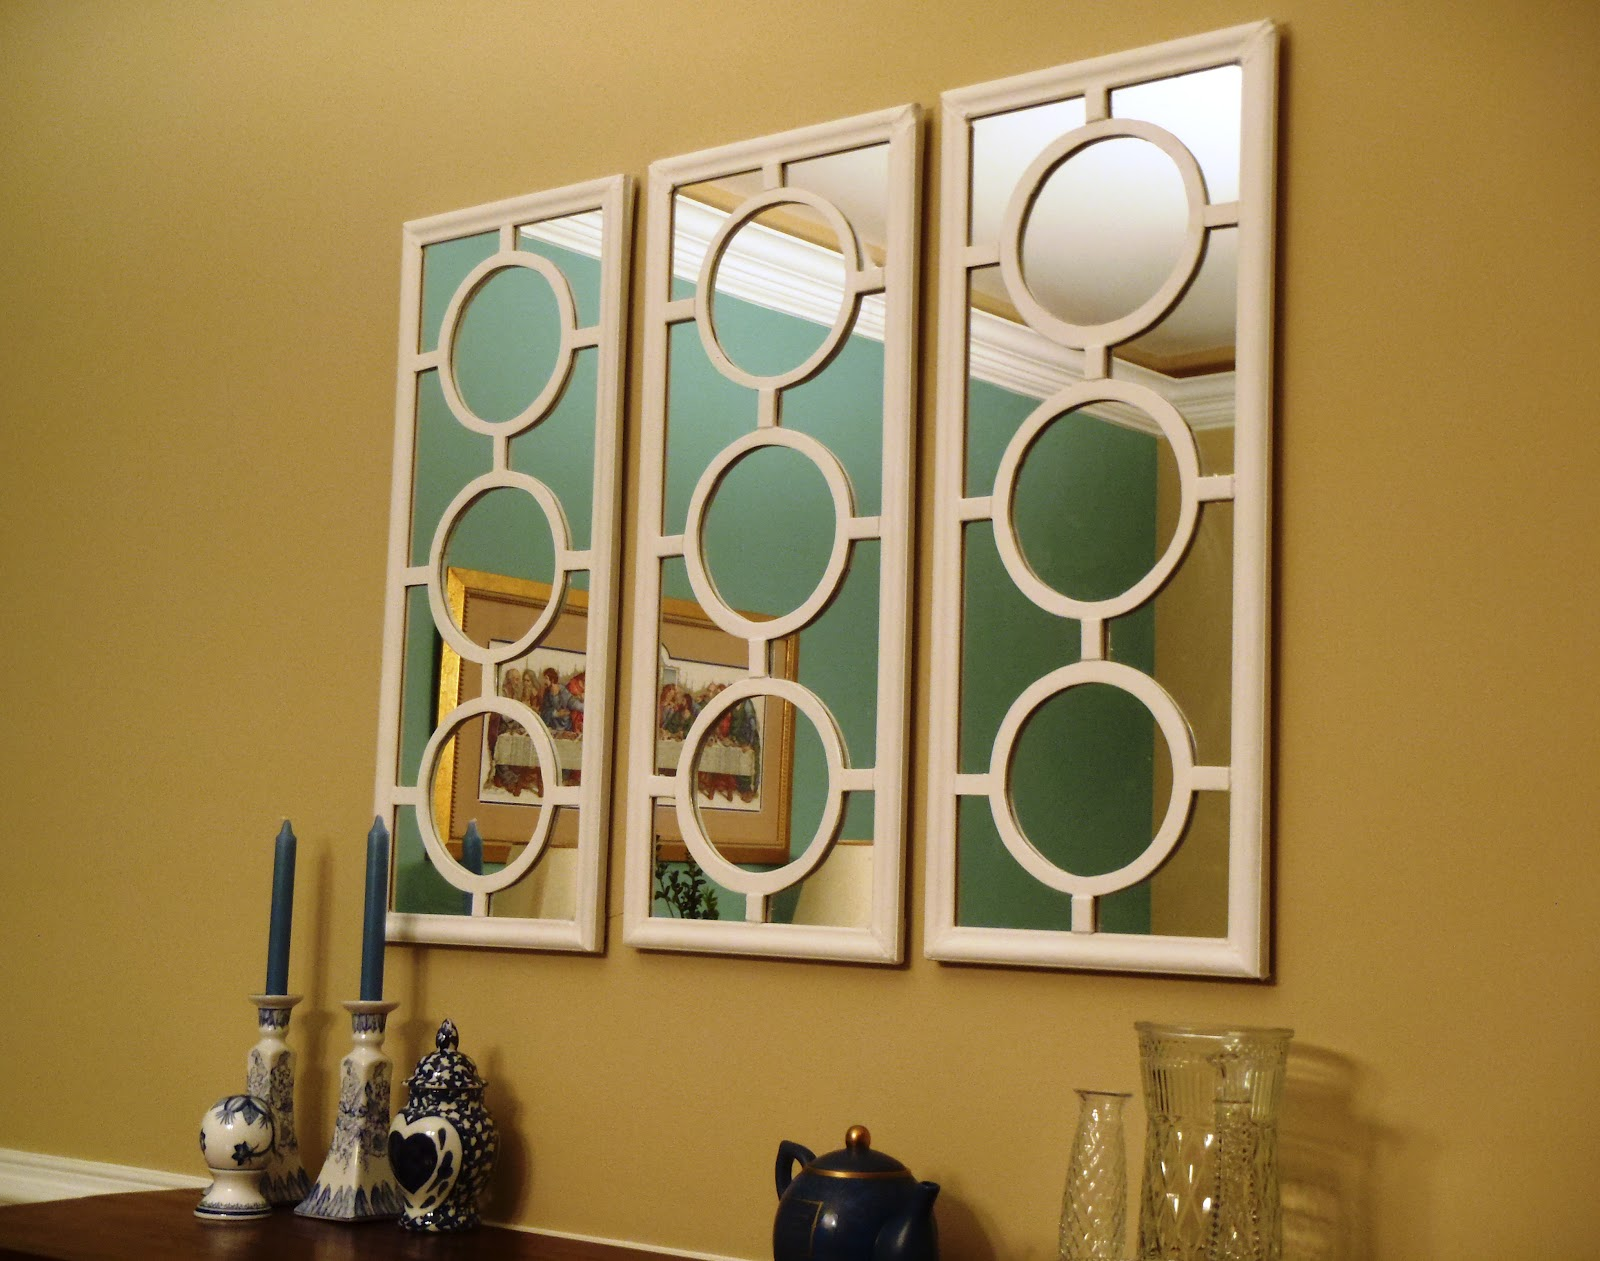 lazy liz on less dining wall mirror decor